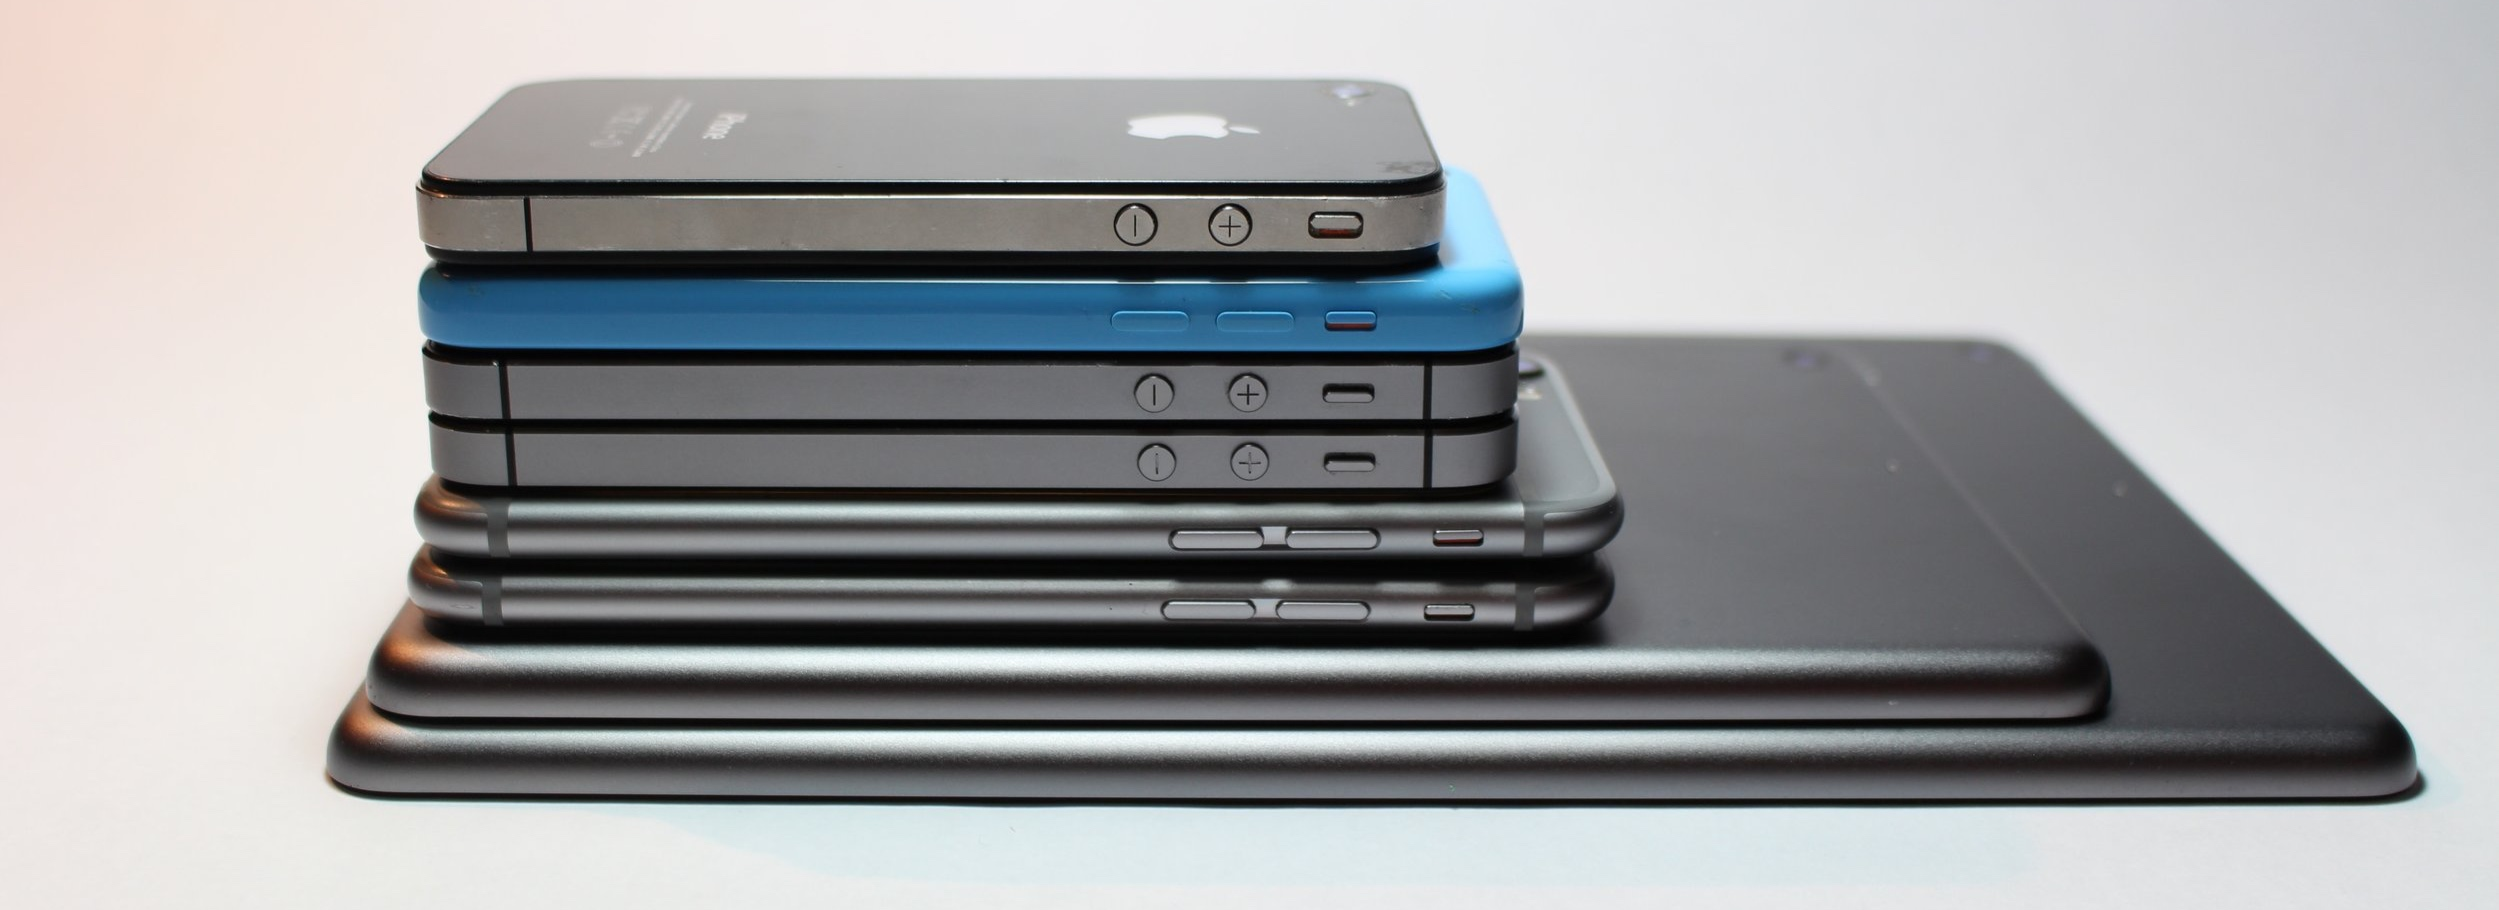 apple-devices-cellphone-close-up-341523.jpg